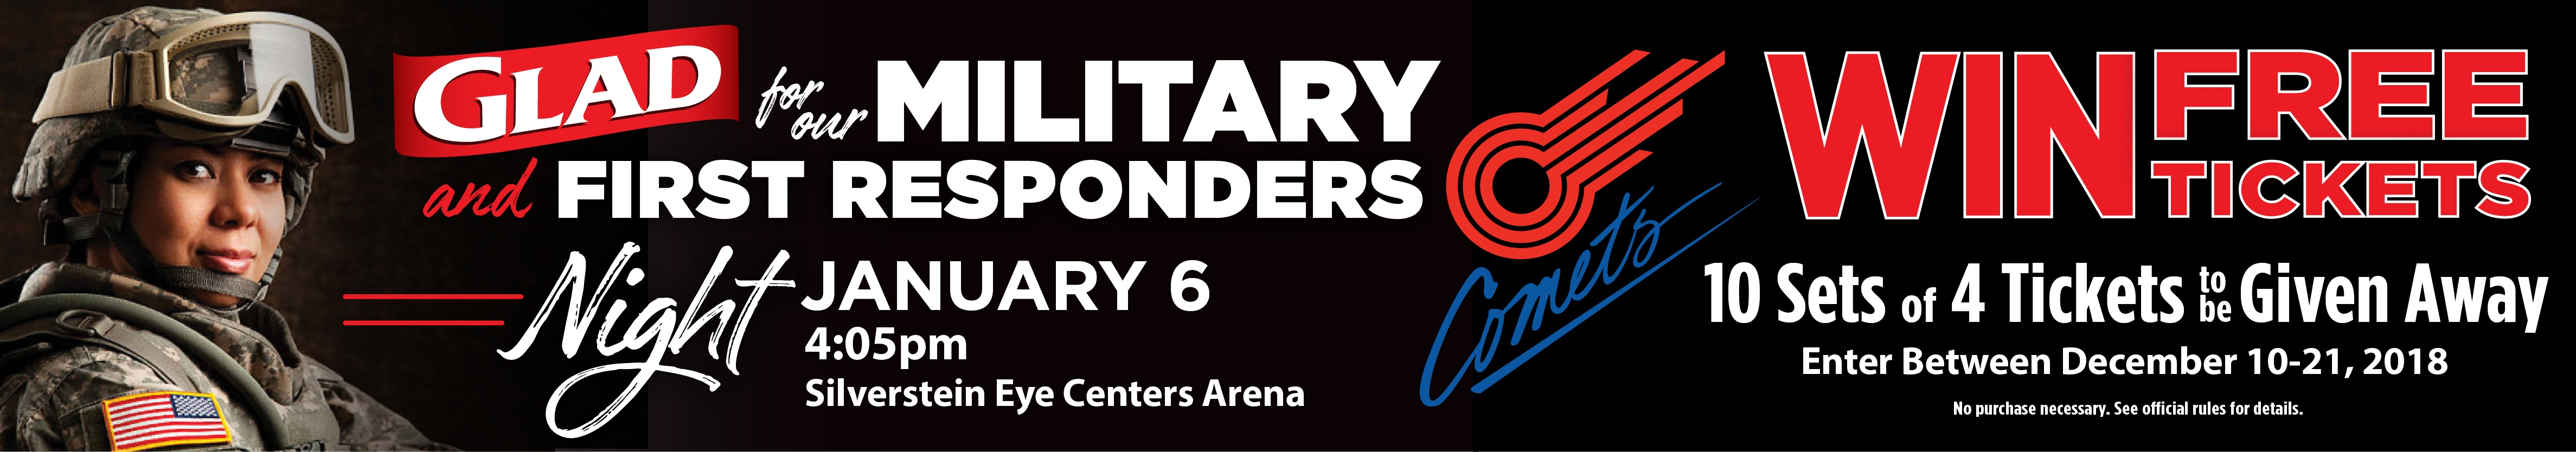 Register to Win FREE Comets Tickets! 4:05 pm - January 6 2019 - Glad for our Military and First Responders night at Silverstein Eye Centers Arena. 10 Sets of 4 Tickets to be Given Away. Register Between Dec. 10th - 21st.